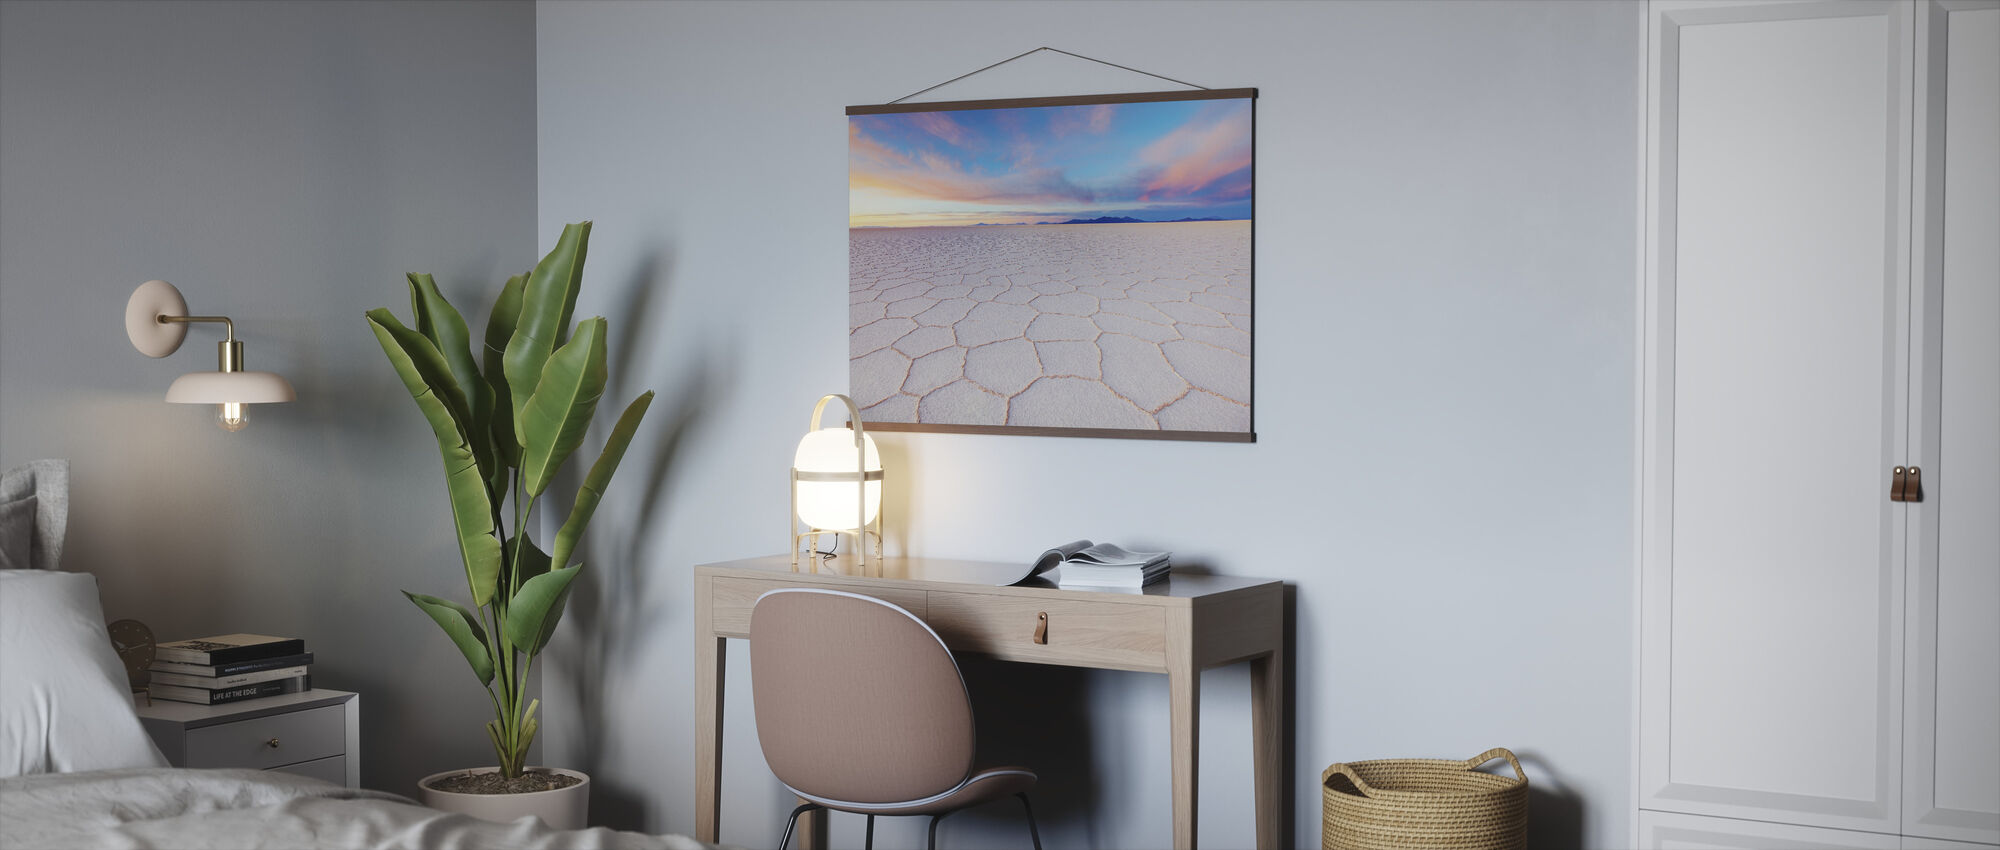 Tenderness - Poster - Office